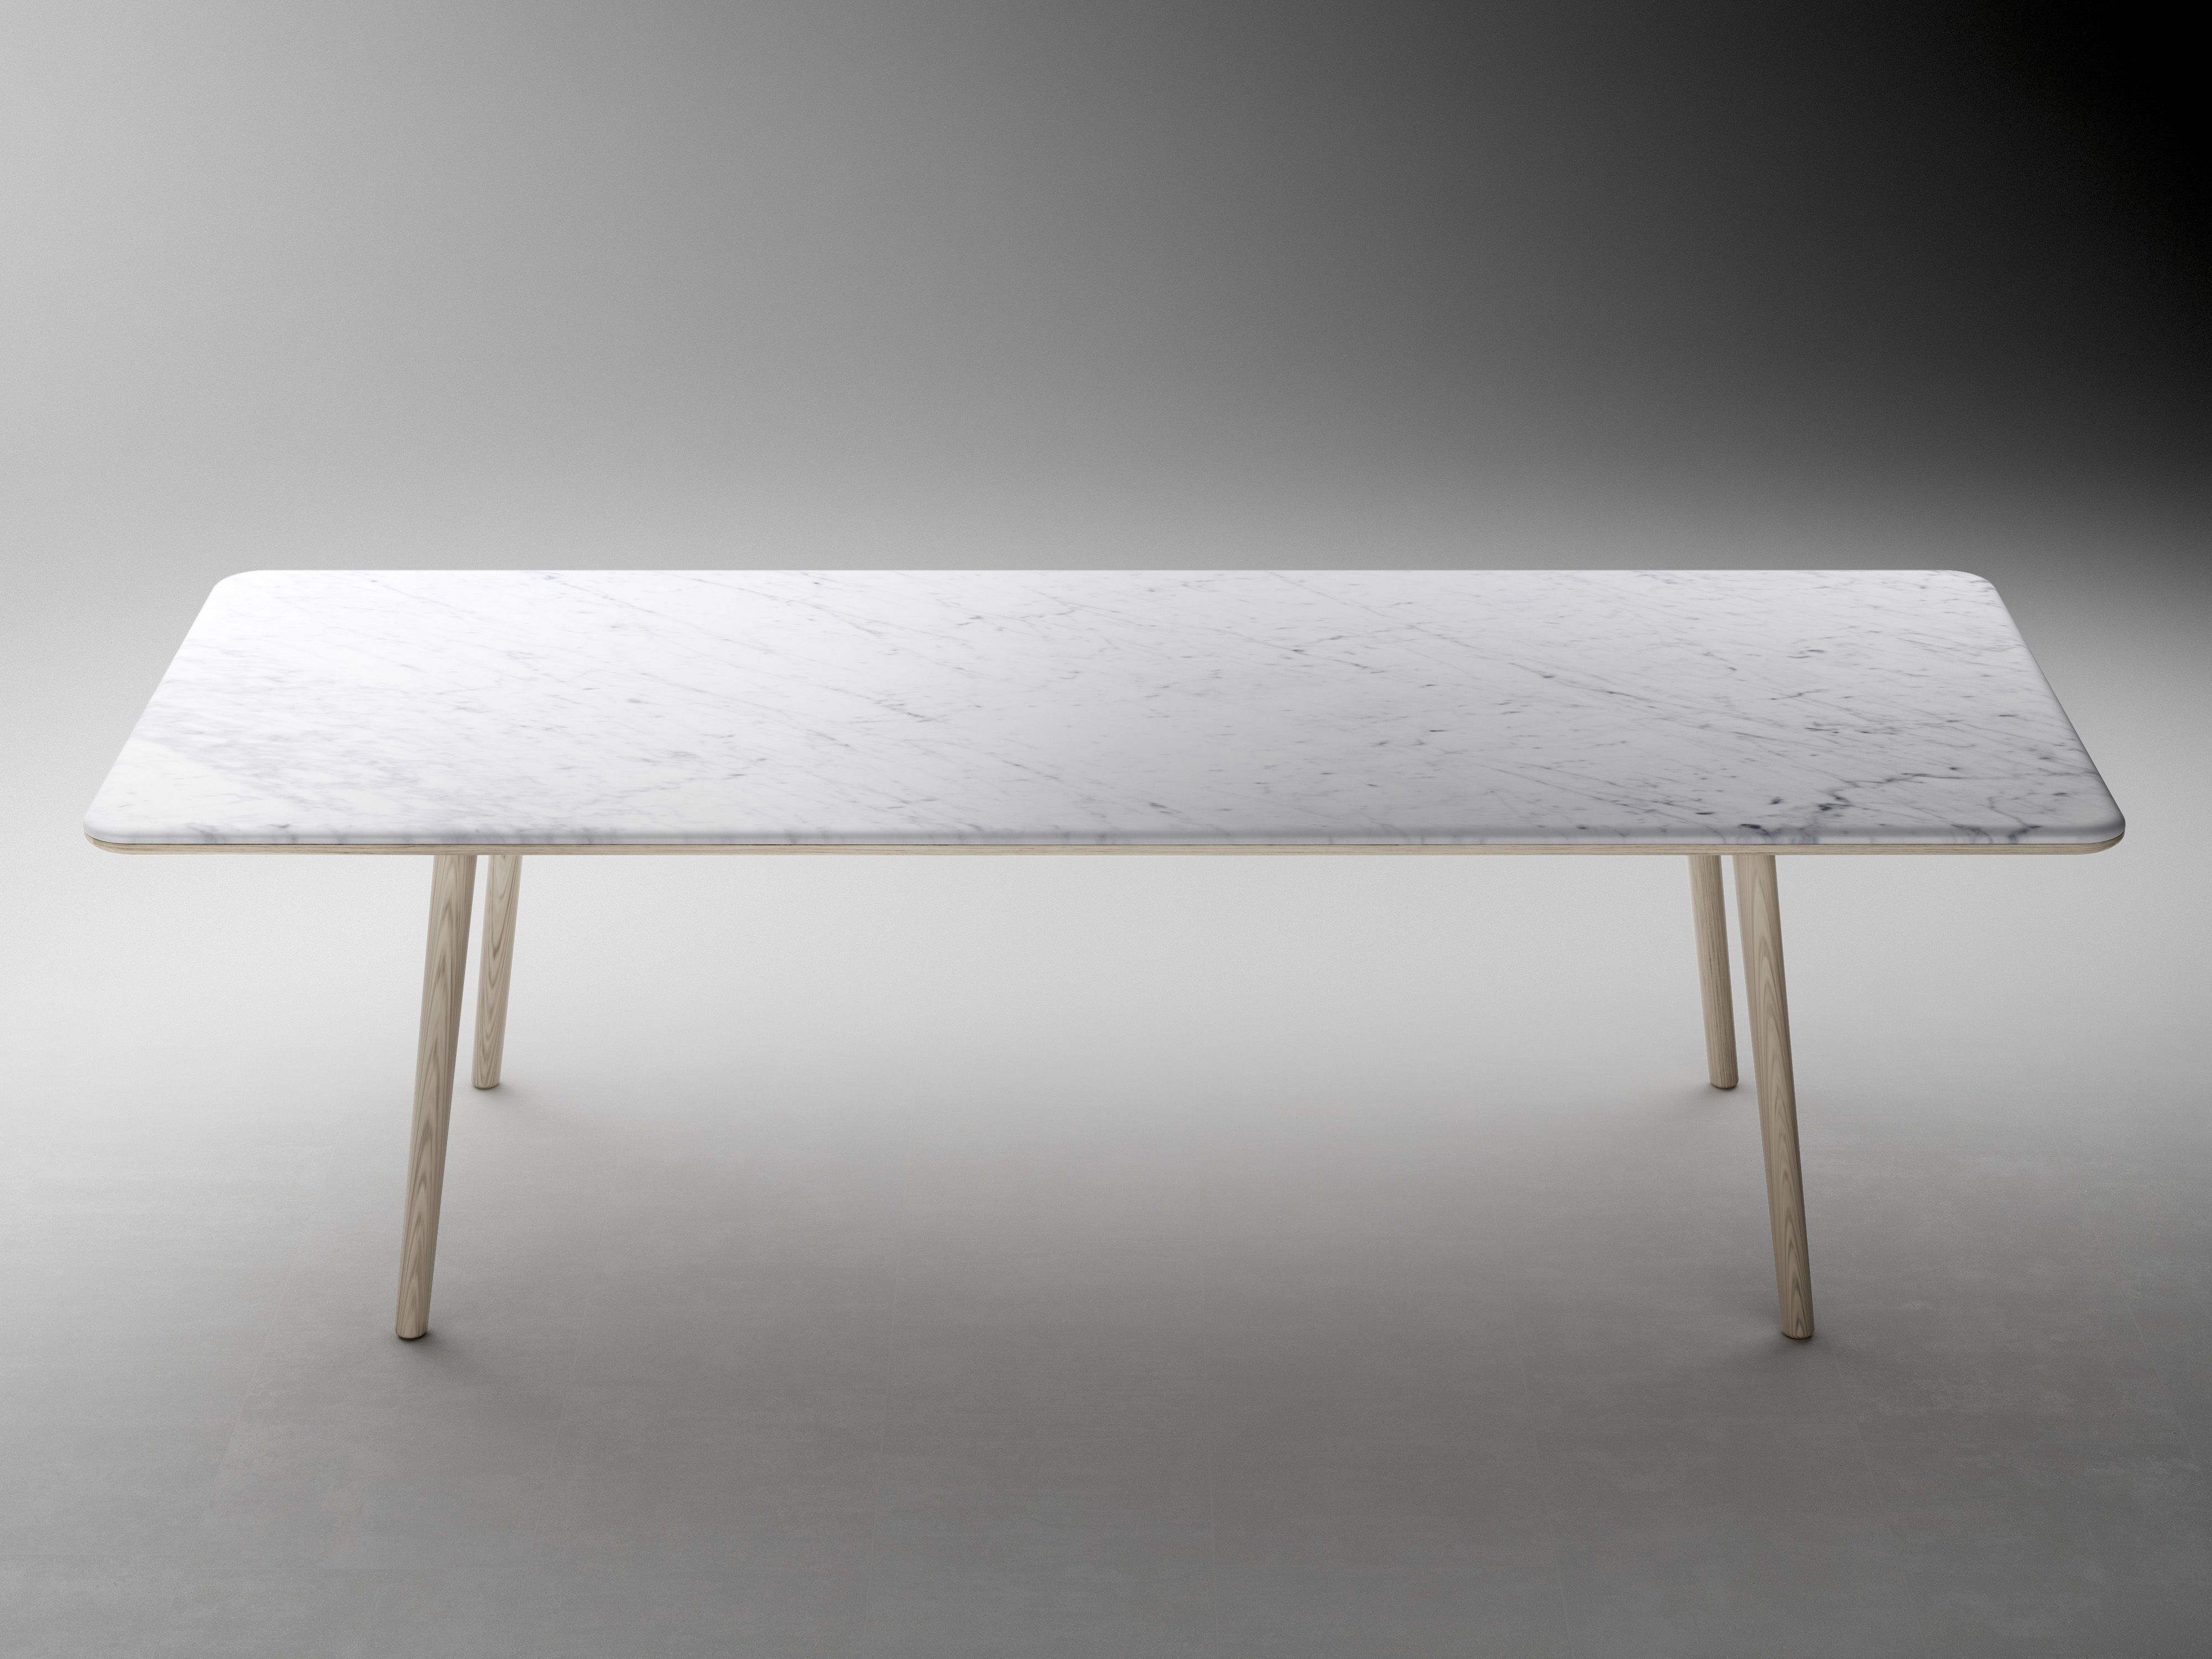 Beau Rectangle Long White Marble Table With White Wooden Legs Placed On The  White Floor, Marble Dining Table With Mesmerizing Design For Your Dining  Room: ...